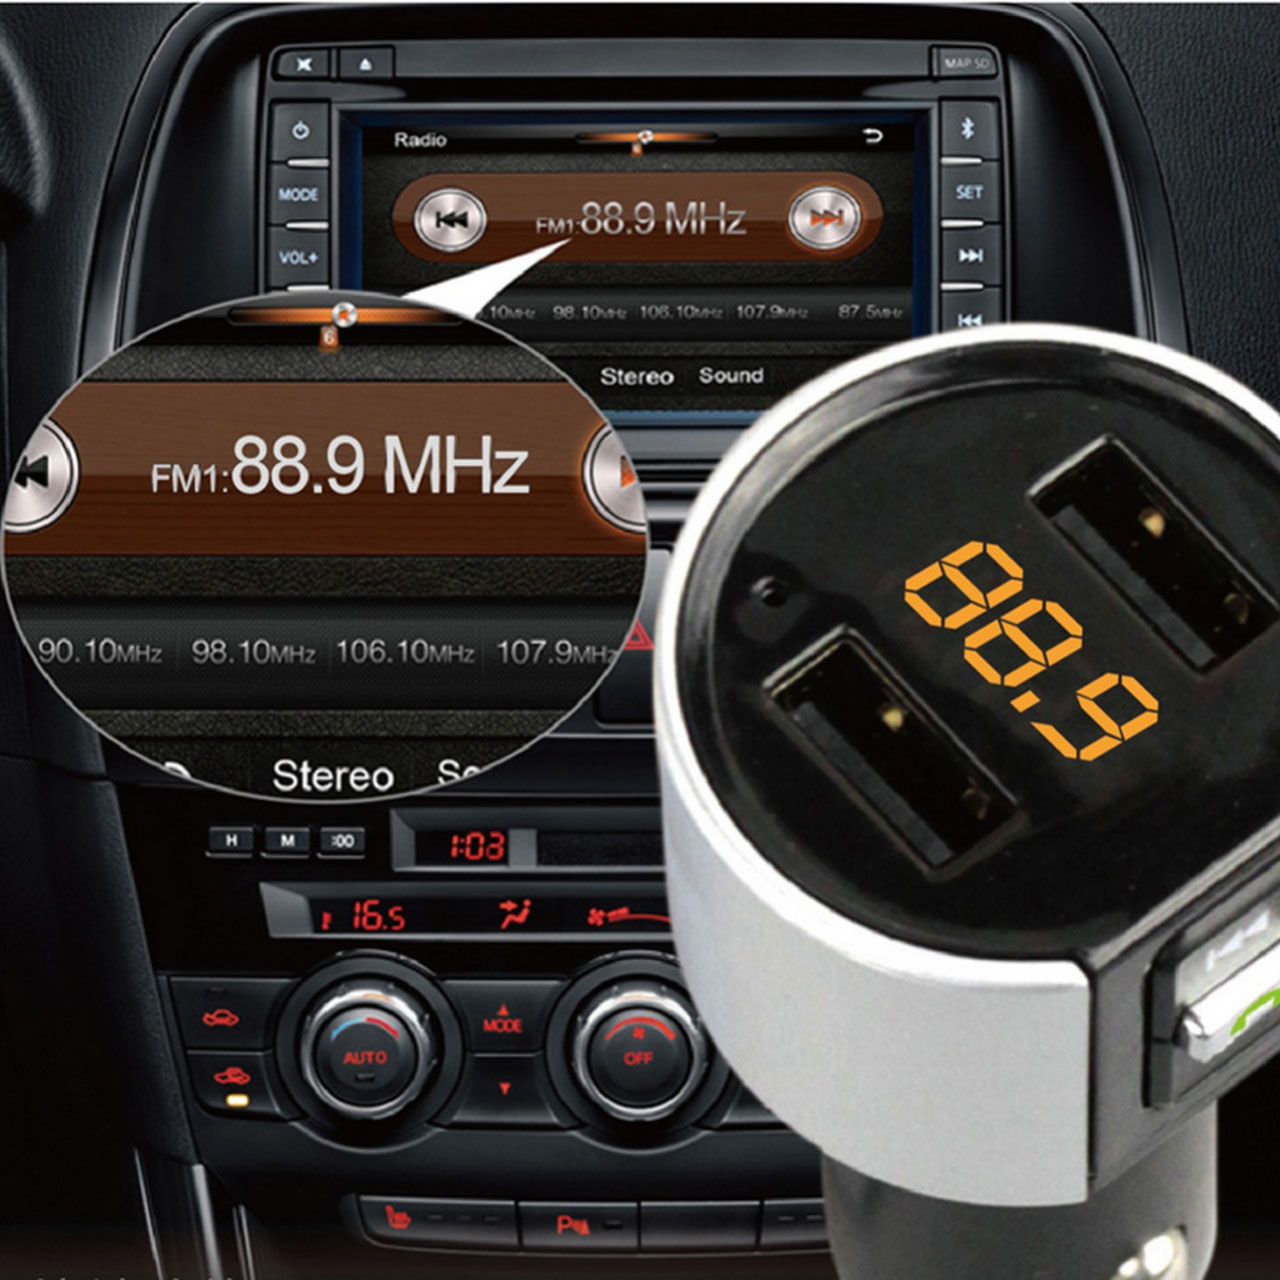 5V 3.4A Dual USB Wireless Bluetooth Car Kit Hands Free Call MP3 Radio Player Charger FM Transmitter C26S